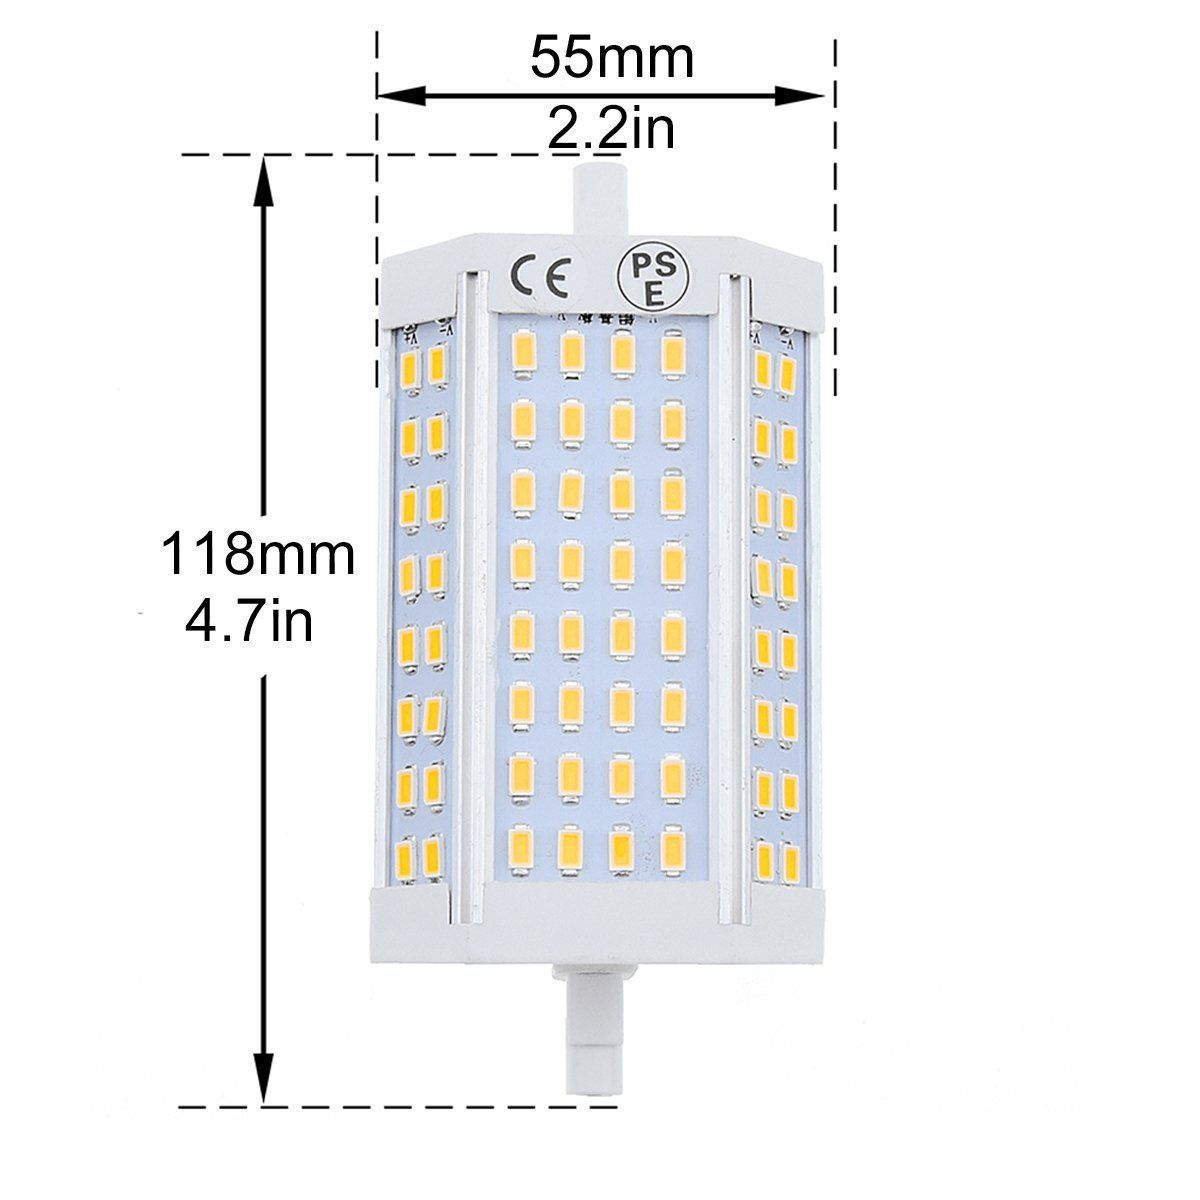 Bonlux Double Ended R7s J118 Led Light Bulb 25w Daylgiht 6000k J Type 118mm 200w Halogen Bulb Equivalent Led Flood Li Led Flood Lights Led Light Bulb Led Flood